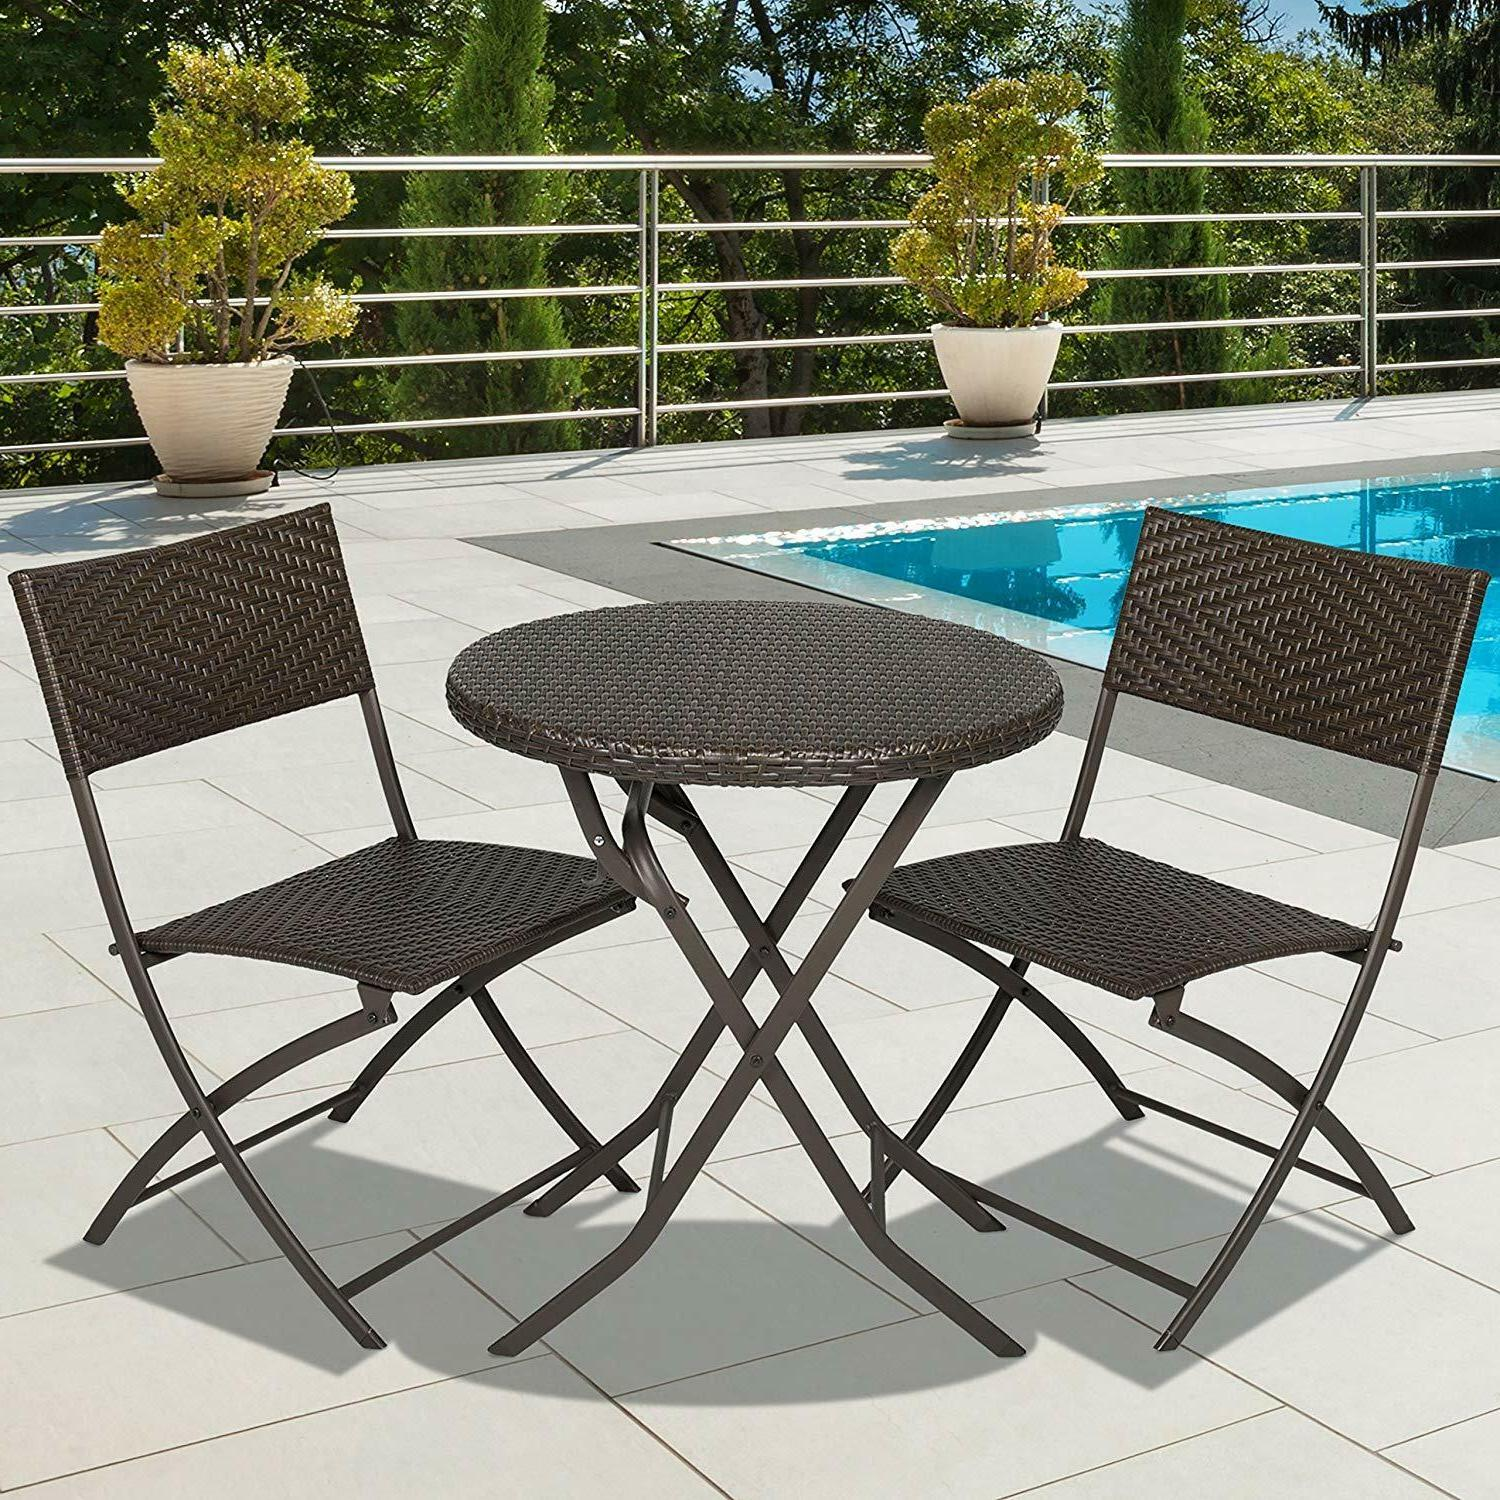 Patio Dining Set Outdoor Garden Furniture Wicker 2 Chairs Ro